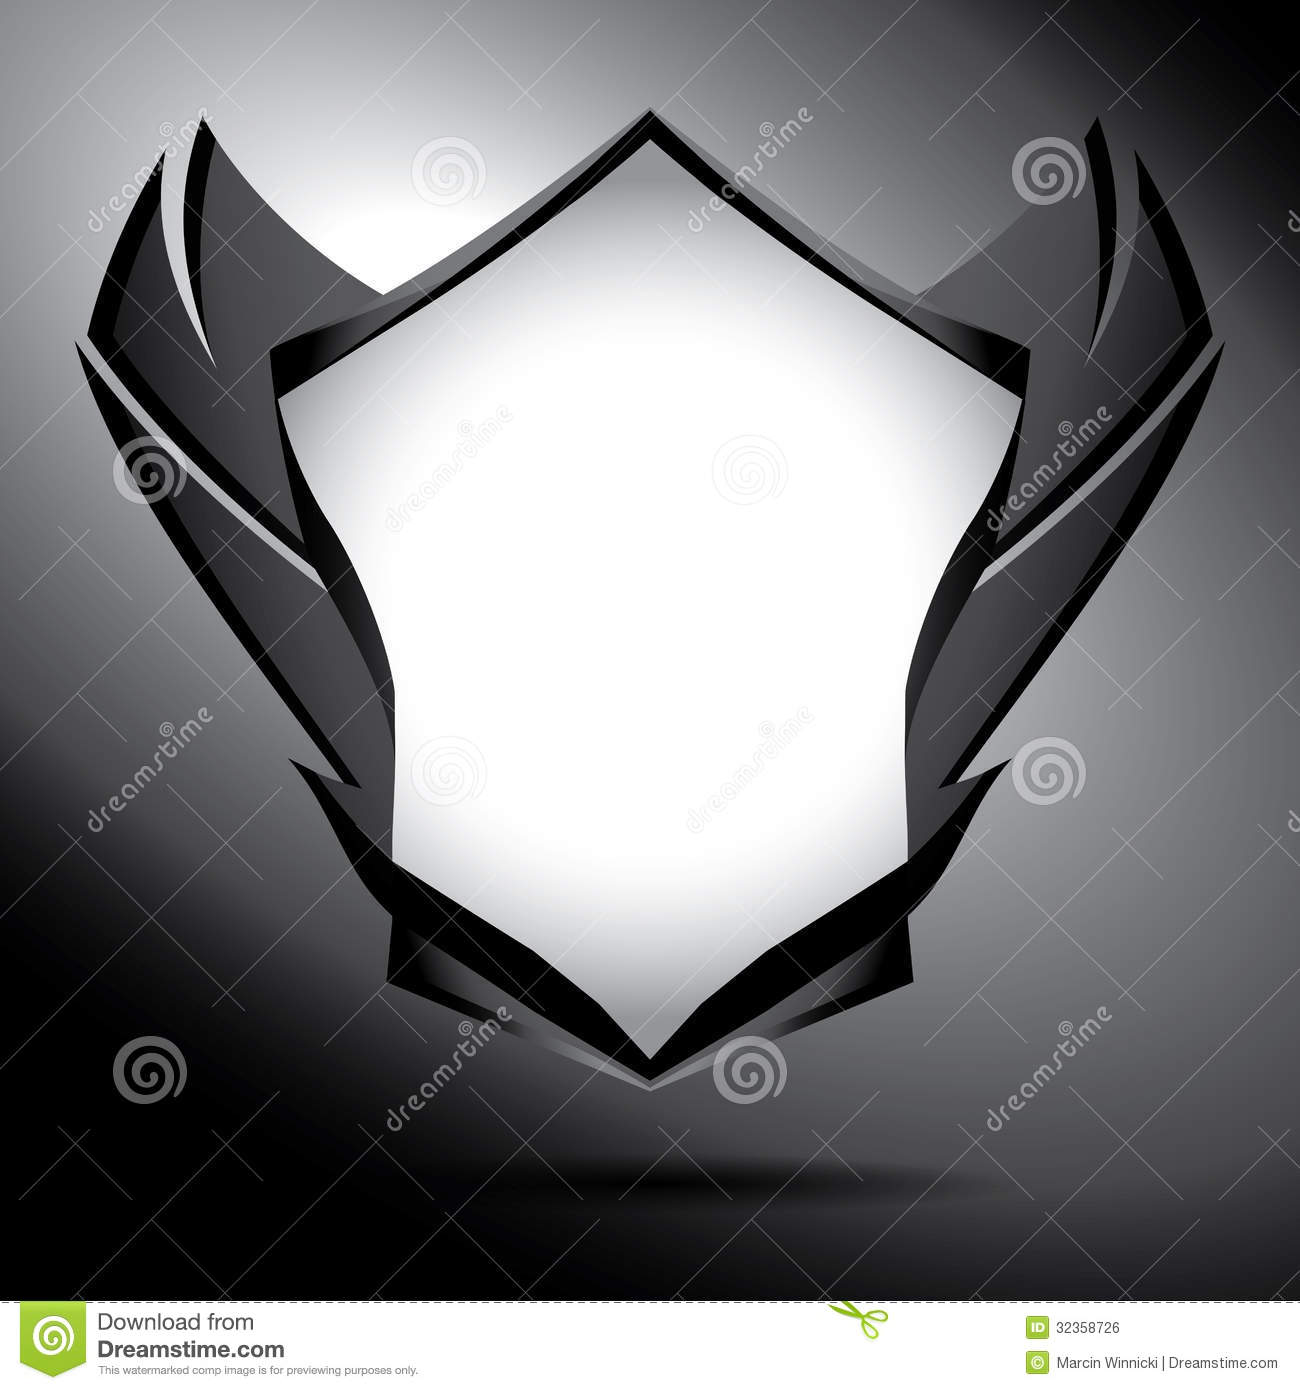 Black and white shield with wings